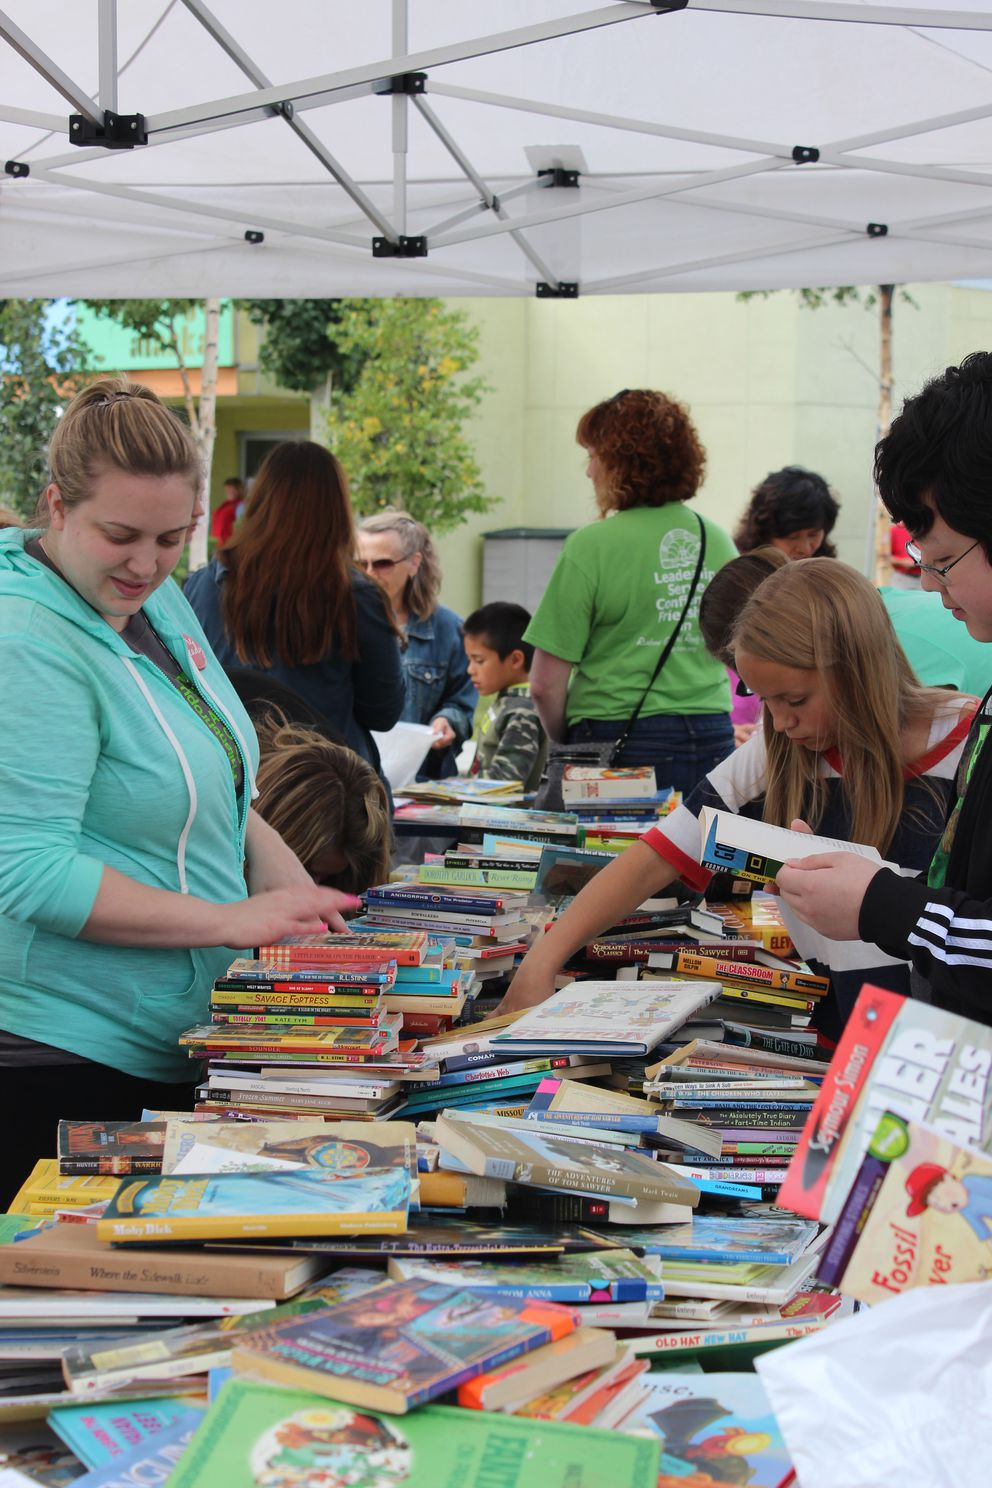 Families choose free books to take home during thread's Book Party in the Park.